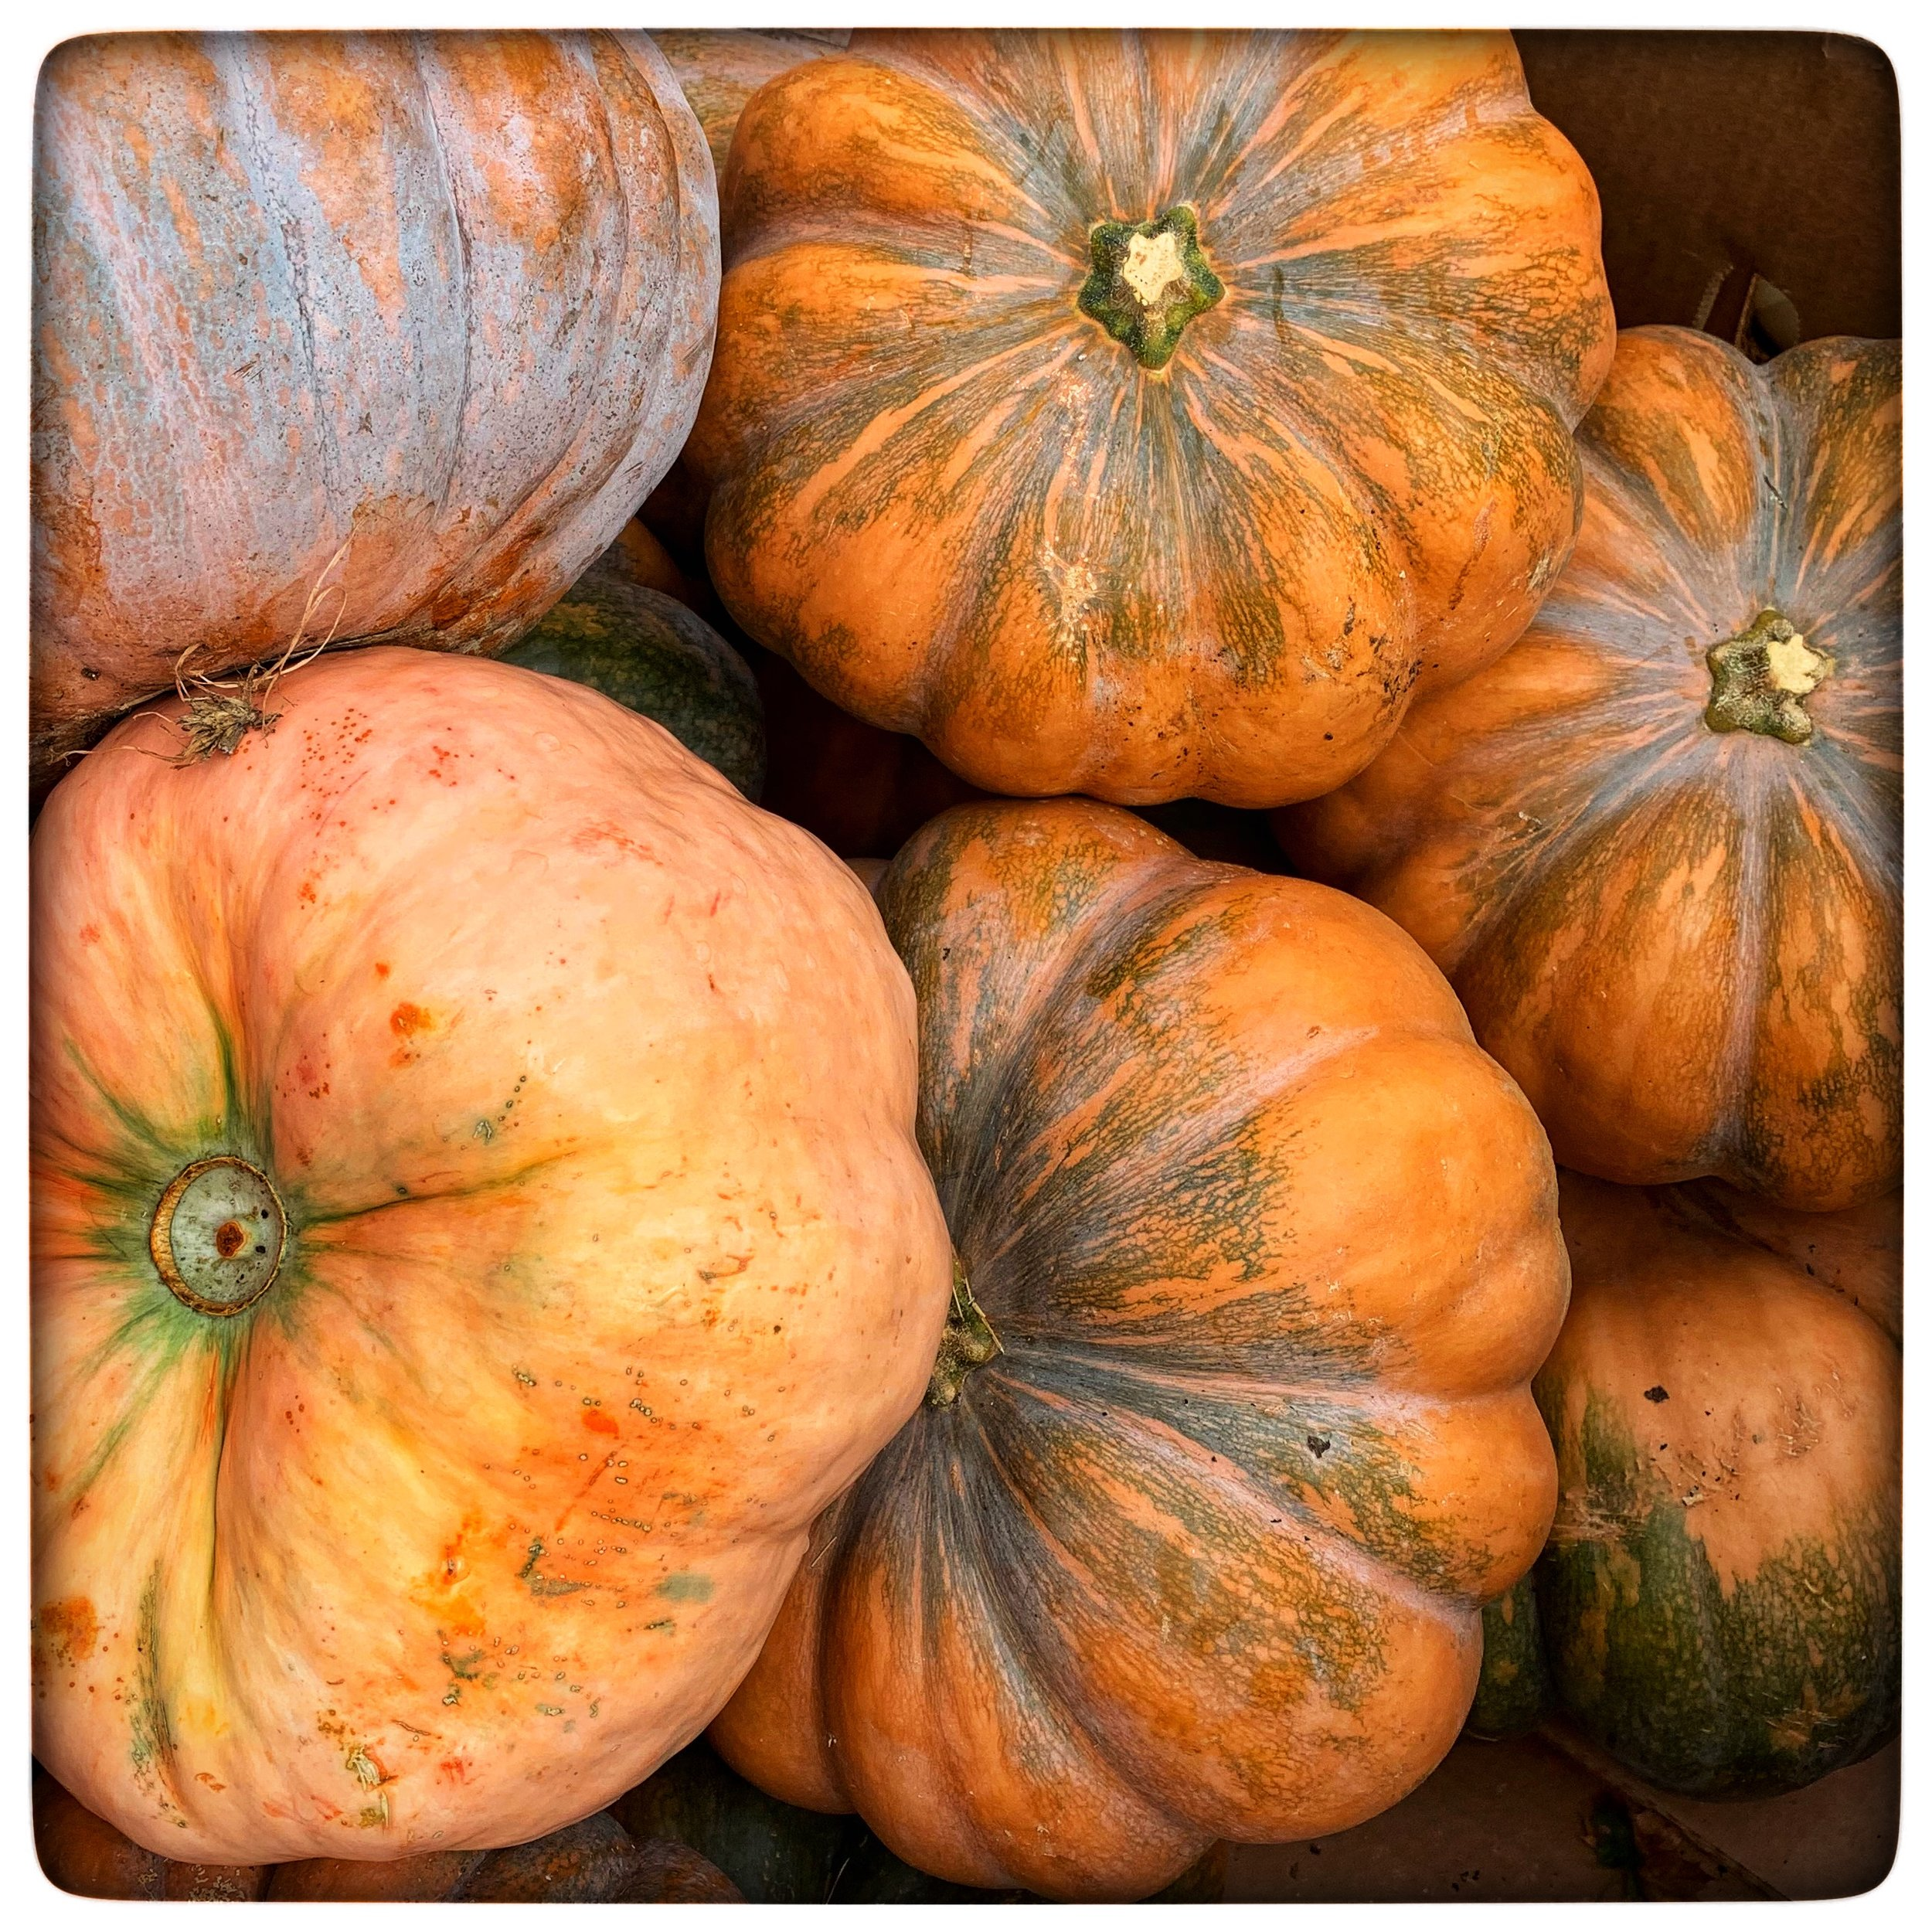 Love the varieties of colors and shapes with this year's pumpkins at our store!